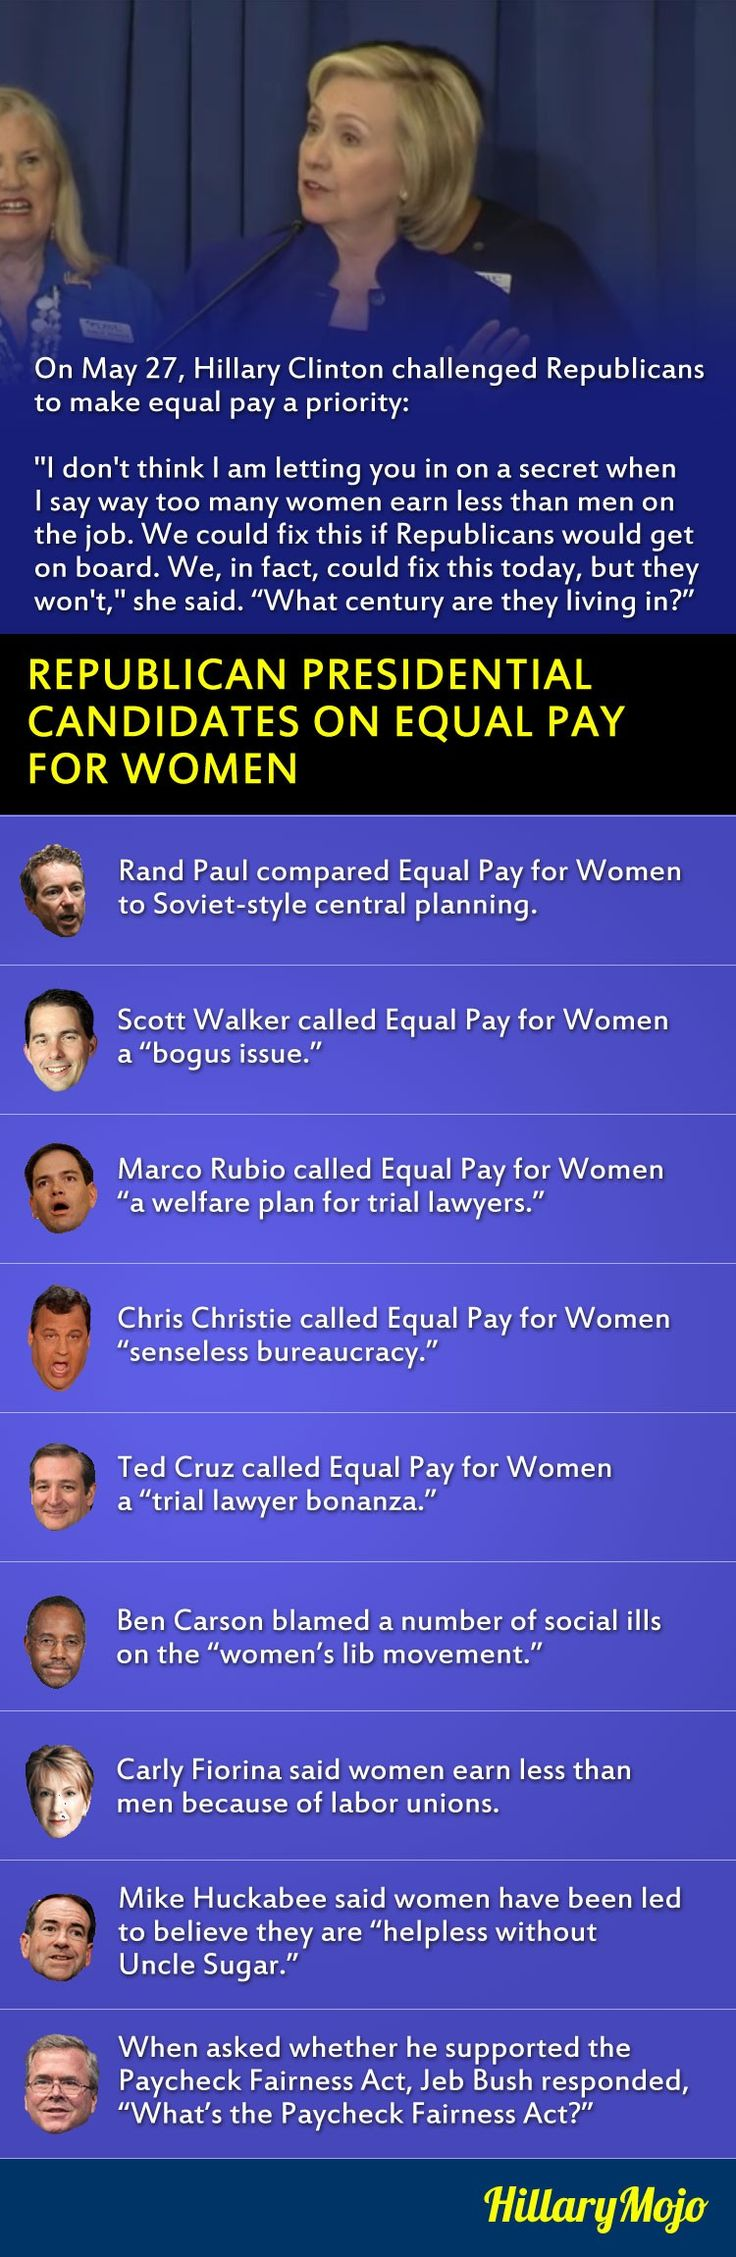 This Infographic Shows How Little Republicans Care About Equal Pay For Women - Democratic Underground